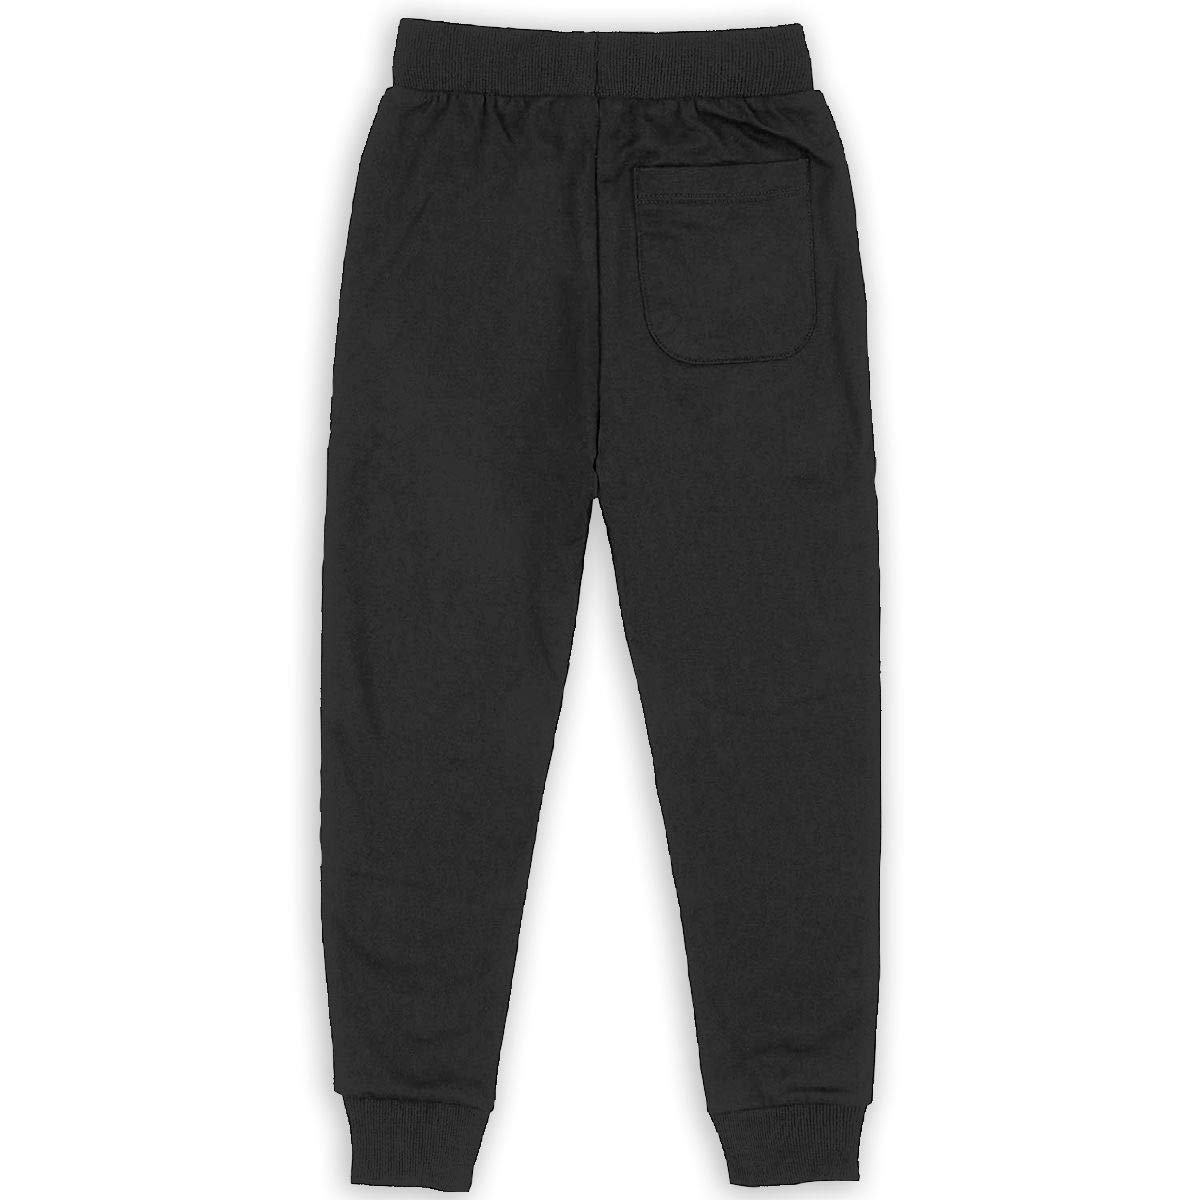 Sweet As Pi-1 Soft//Cozy Sweatpants Teenager Active Pants for Teenager Girls